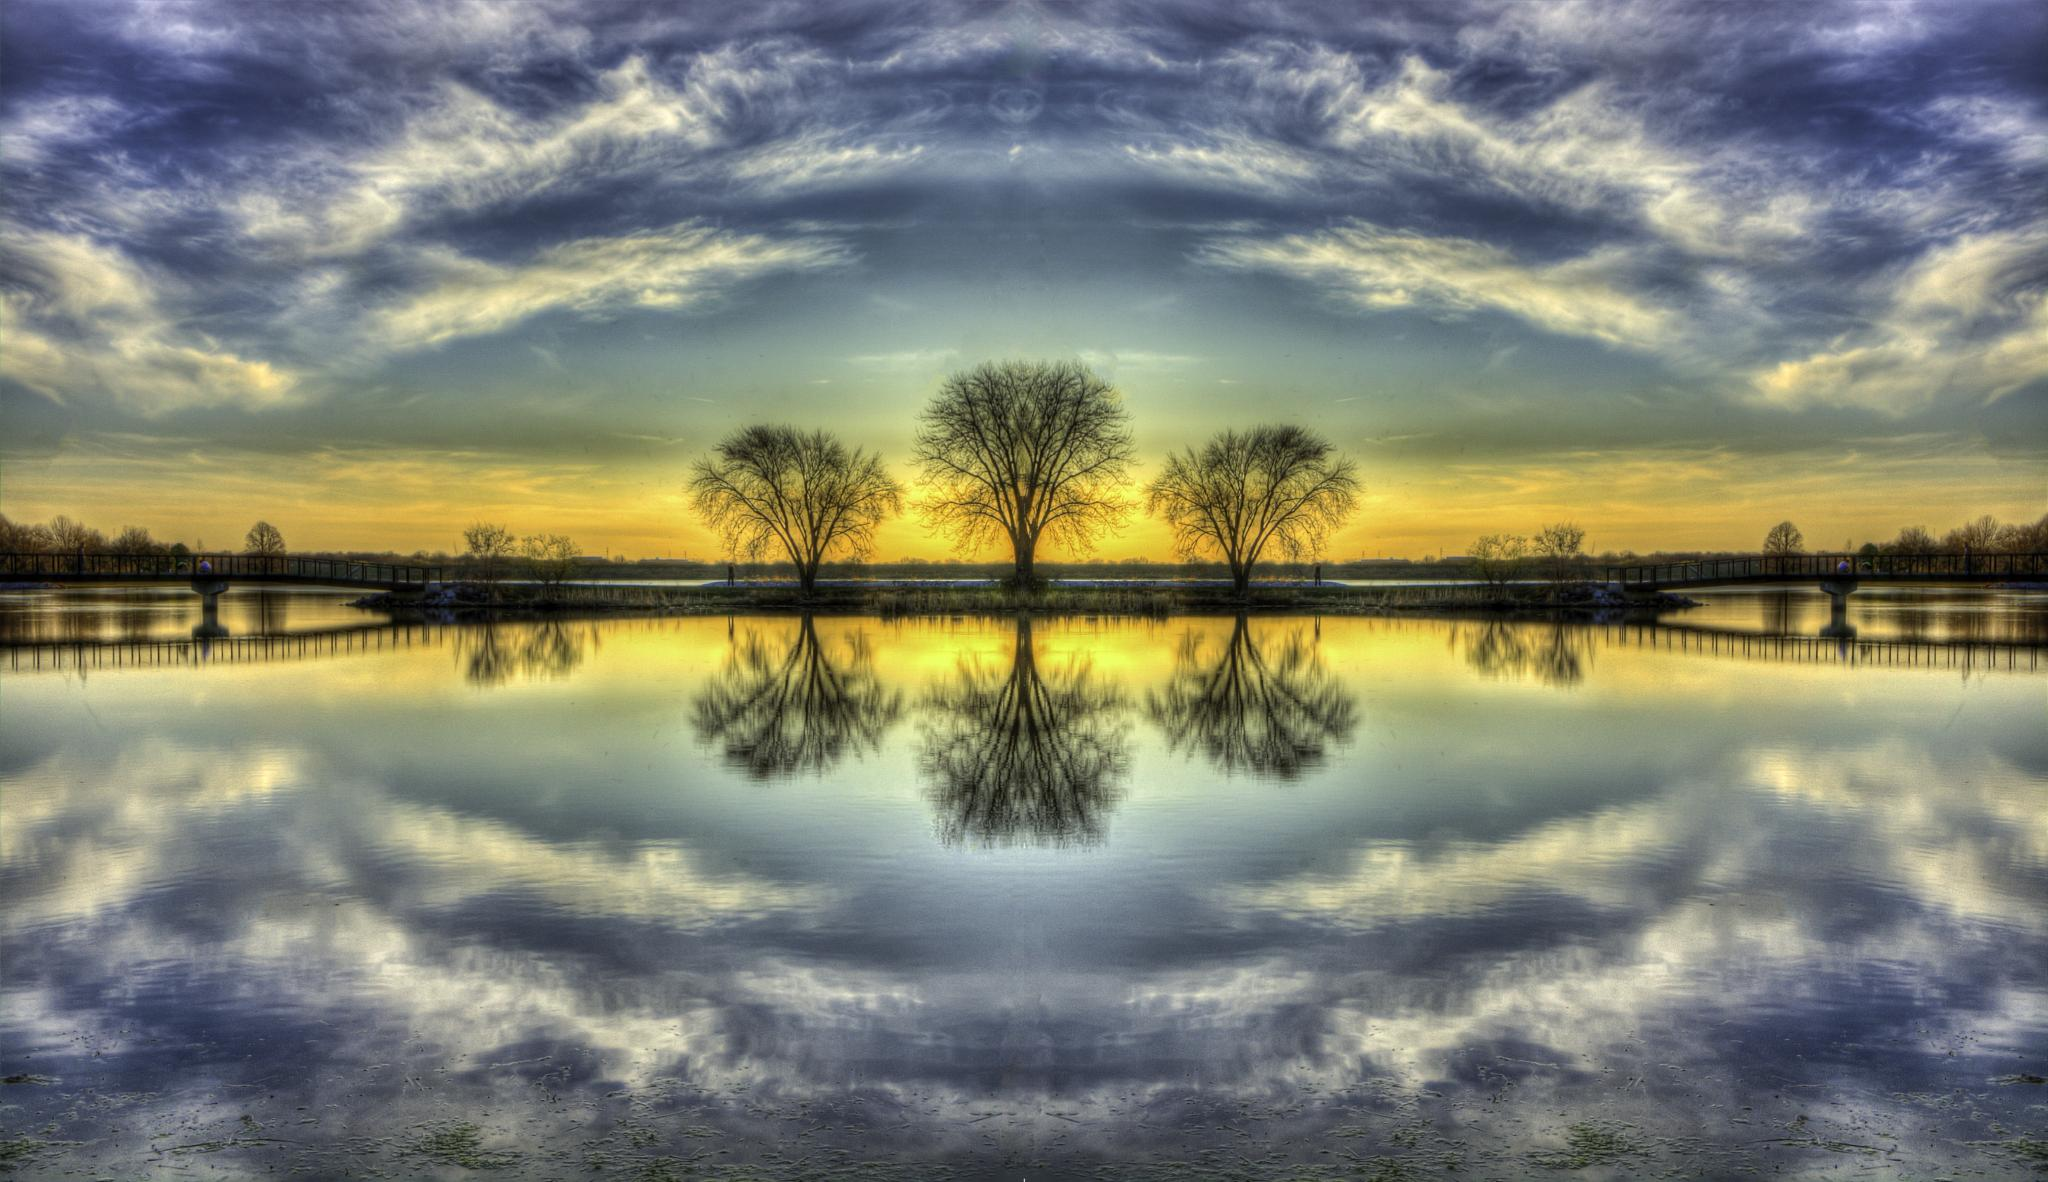 Horizontal & Vertical Reflection by Jay Douglass